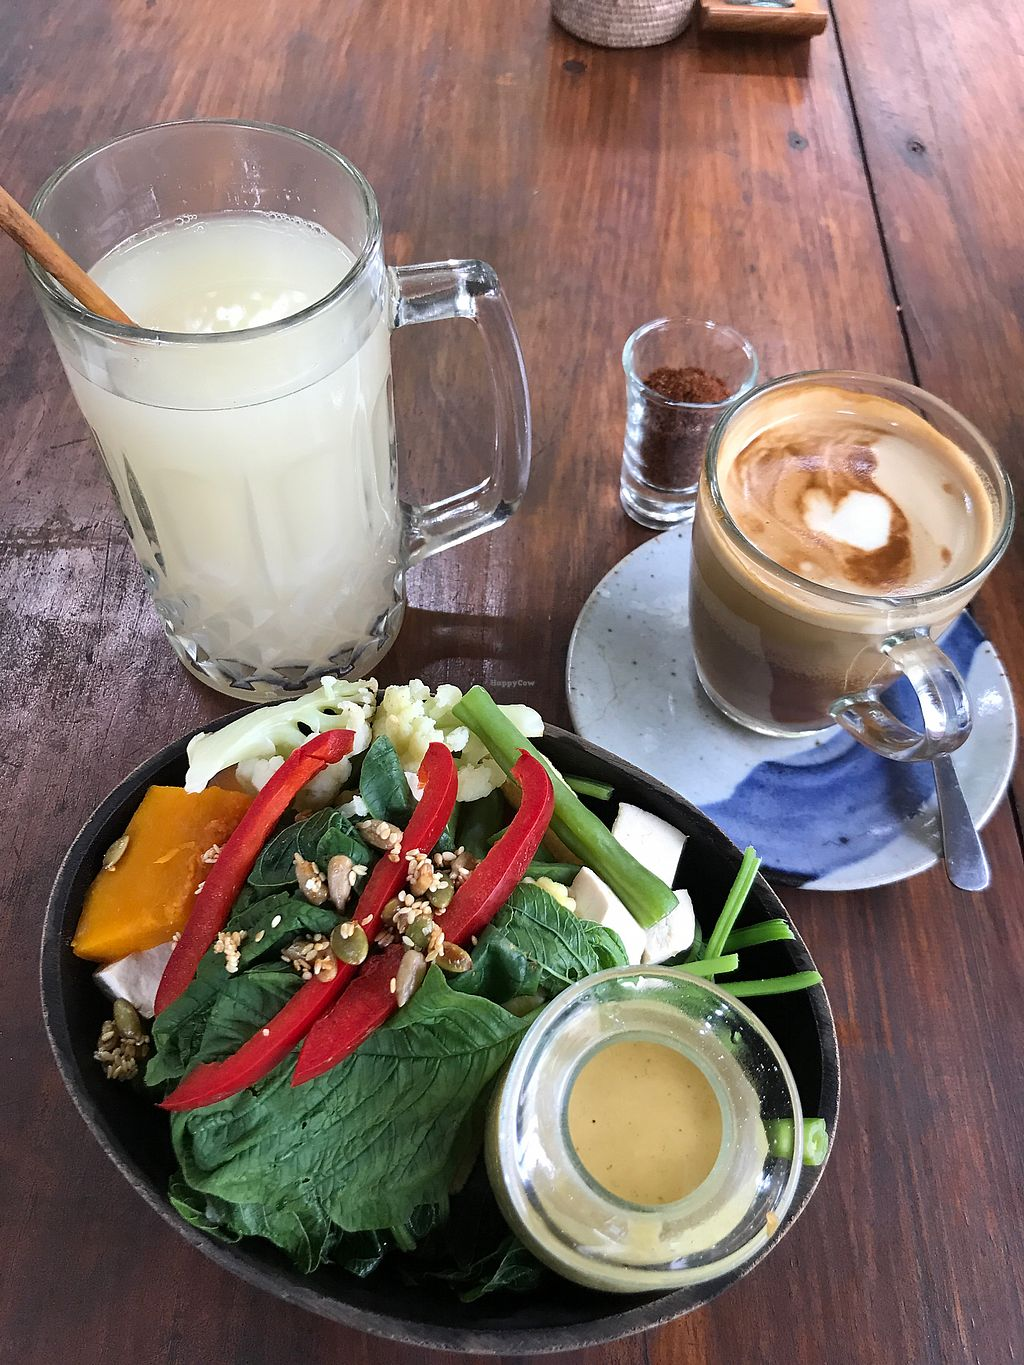 "Photo of The Garden Kafe at The Yoga Barn  by <a href=""/members/profile/LolaNachtigall"">LolaNachtigall</a> <br/>macro bowl - vegan & gf <br/> November 14, 2017  - <a href='/contact/abuse/image/39987/325685'>Report</a>"